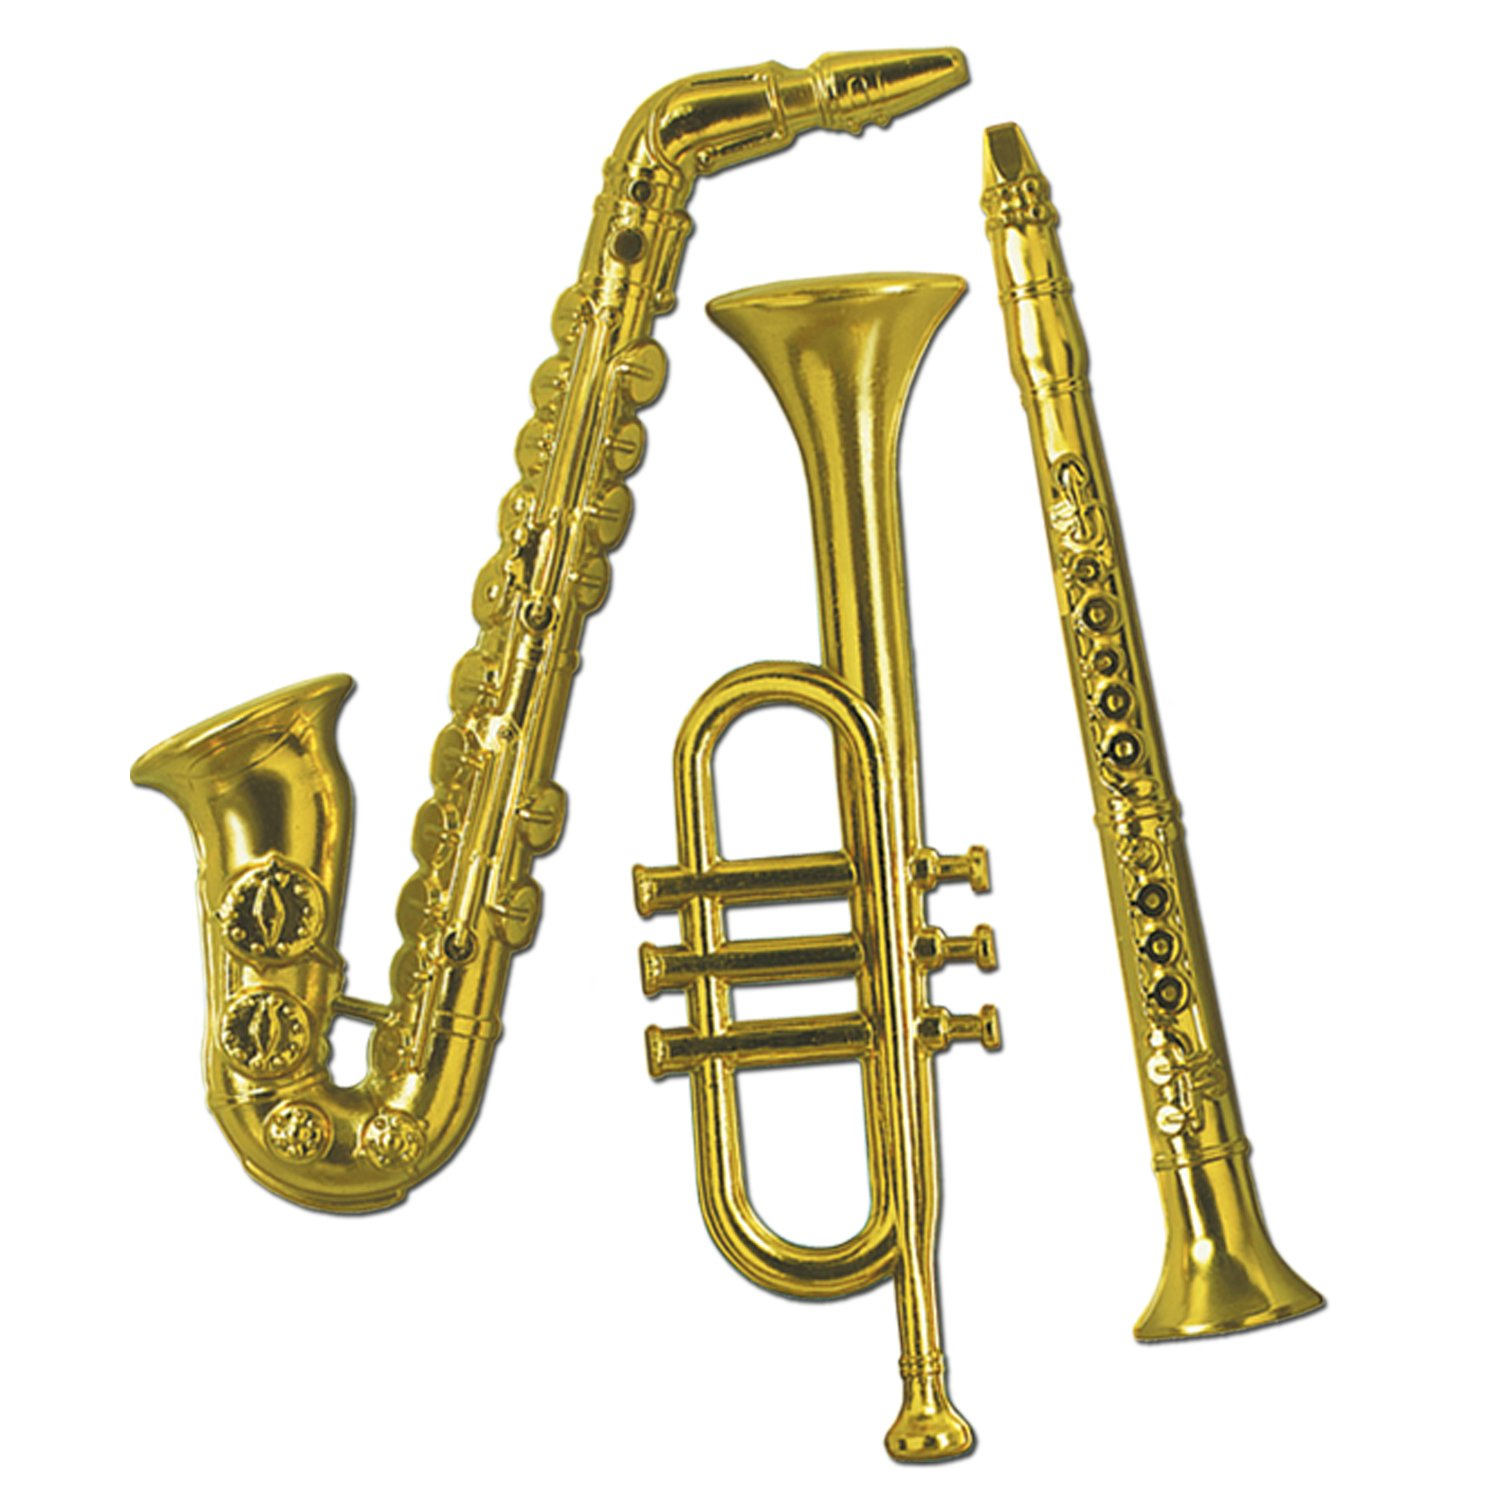 Amazon.com: Gold Plastic Musical Instrument Wall Decorations Package ...